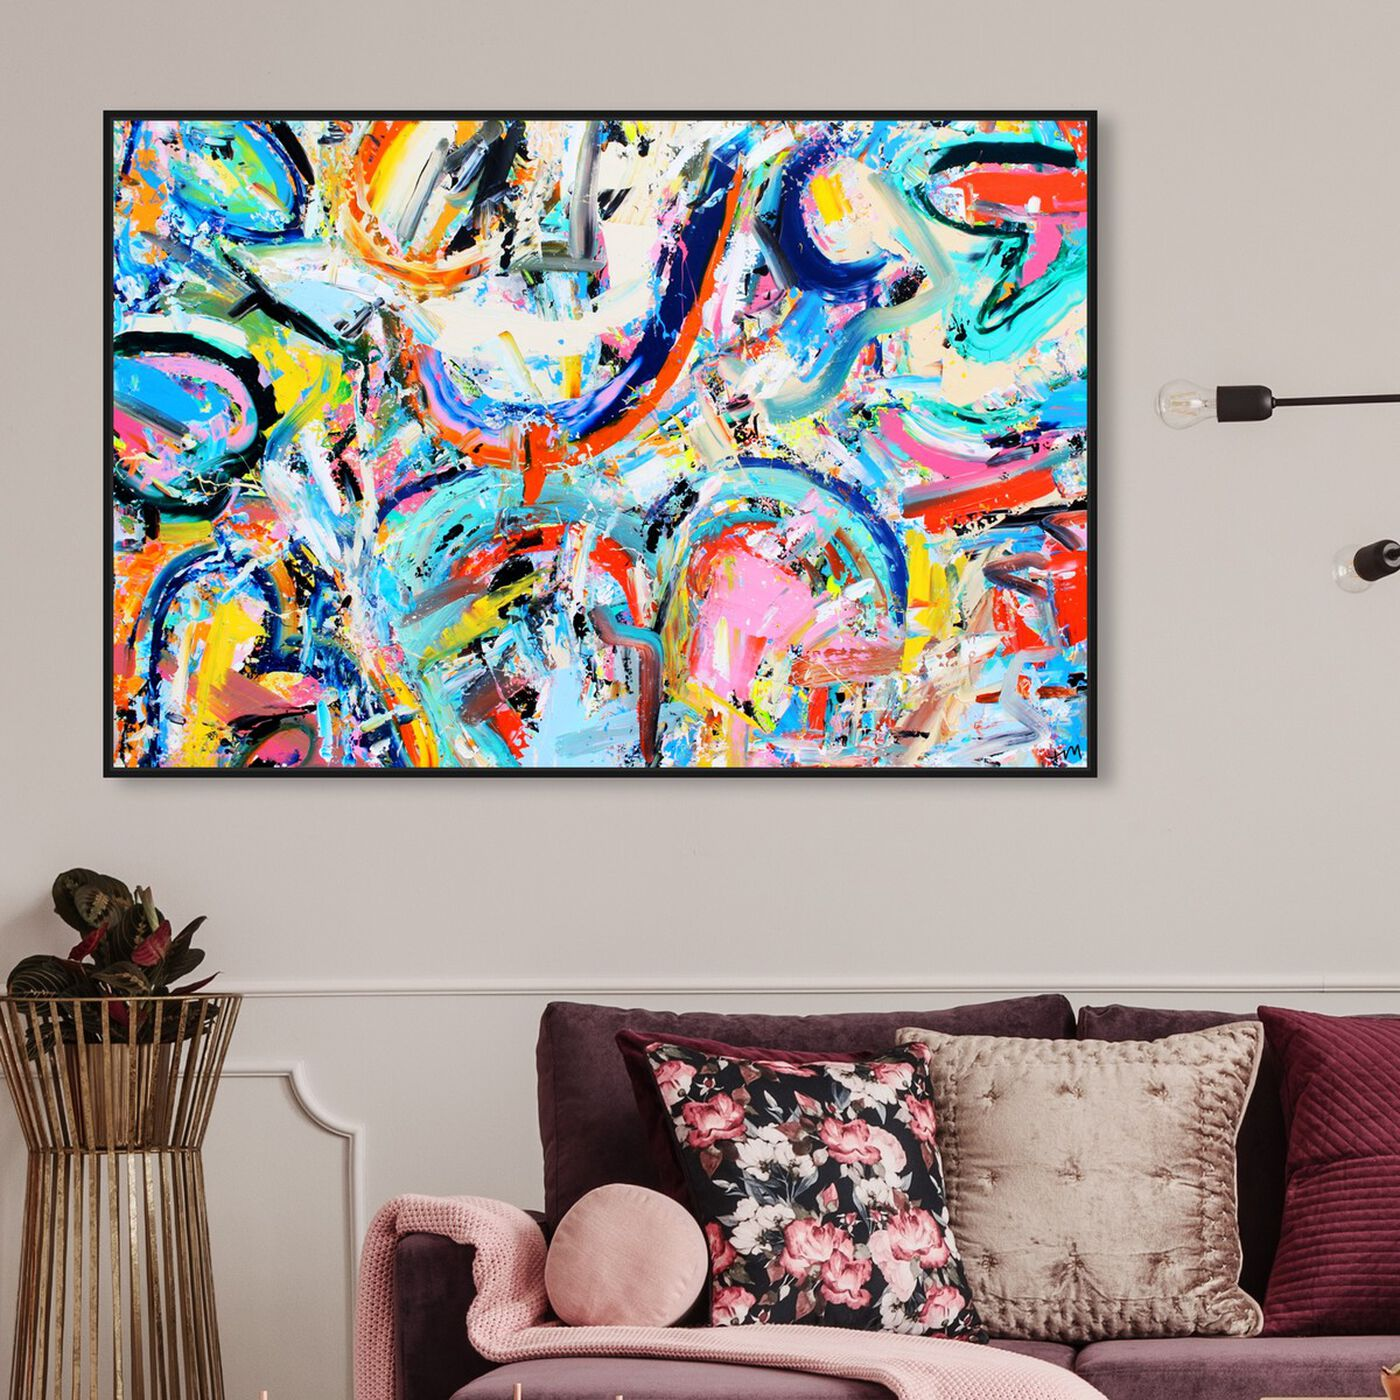 Hanging view of Vita Loqui by Tiago Magro featuring abstract and paint art.